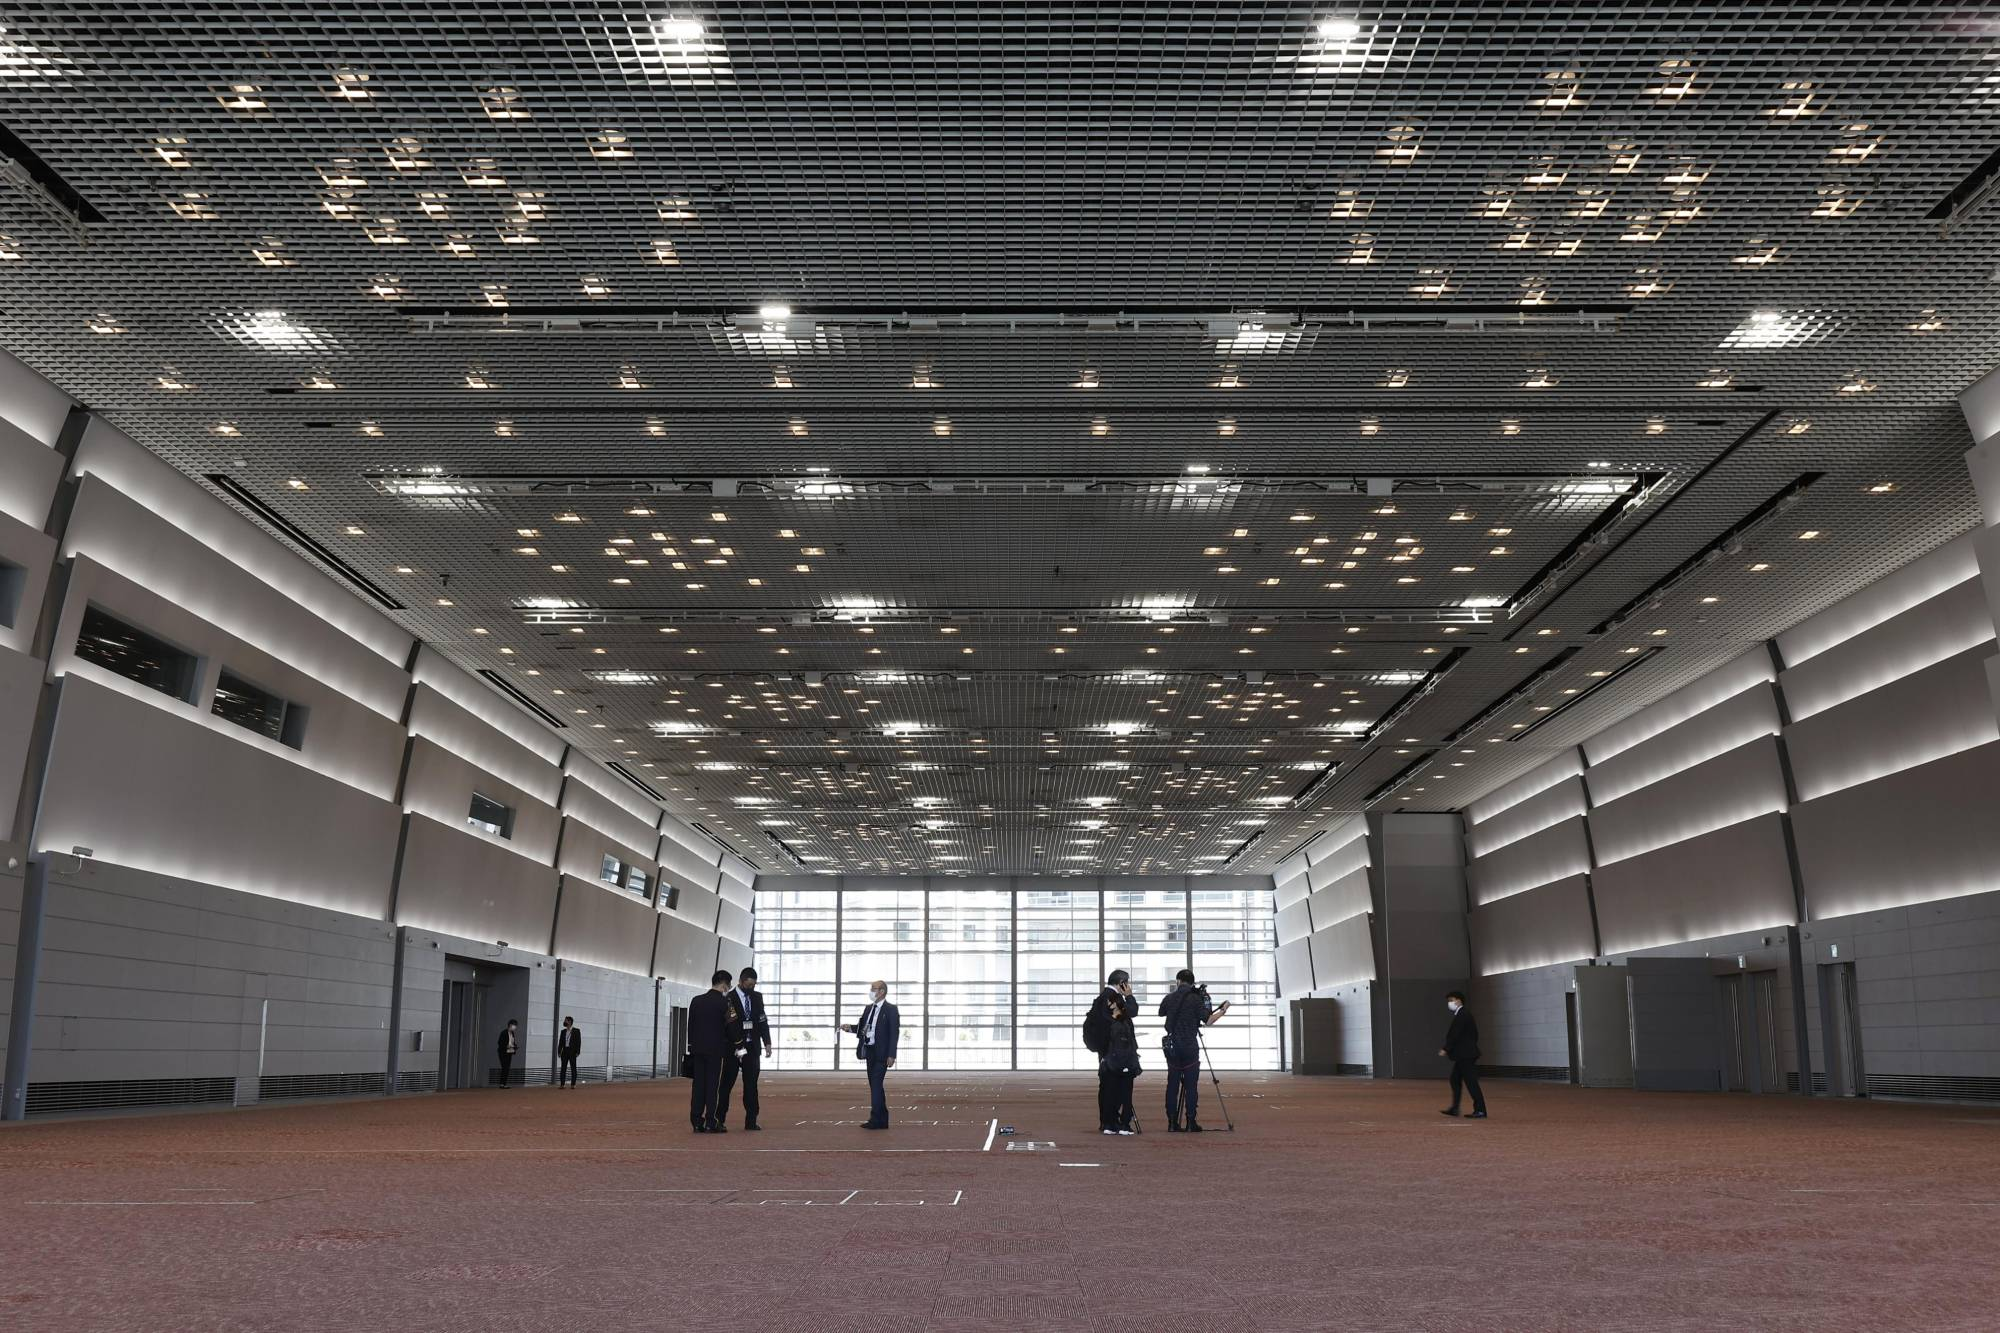 The Osaka International Convention Center has been selected as the site for the government-run mass vaccination as the country seeks to speed up its COVID-19 vaccination campaign. | KYODO